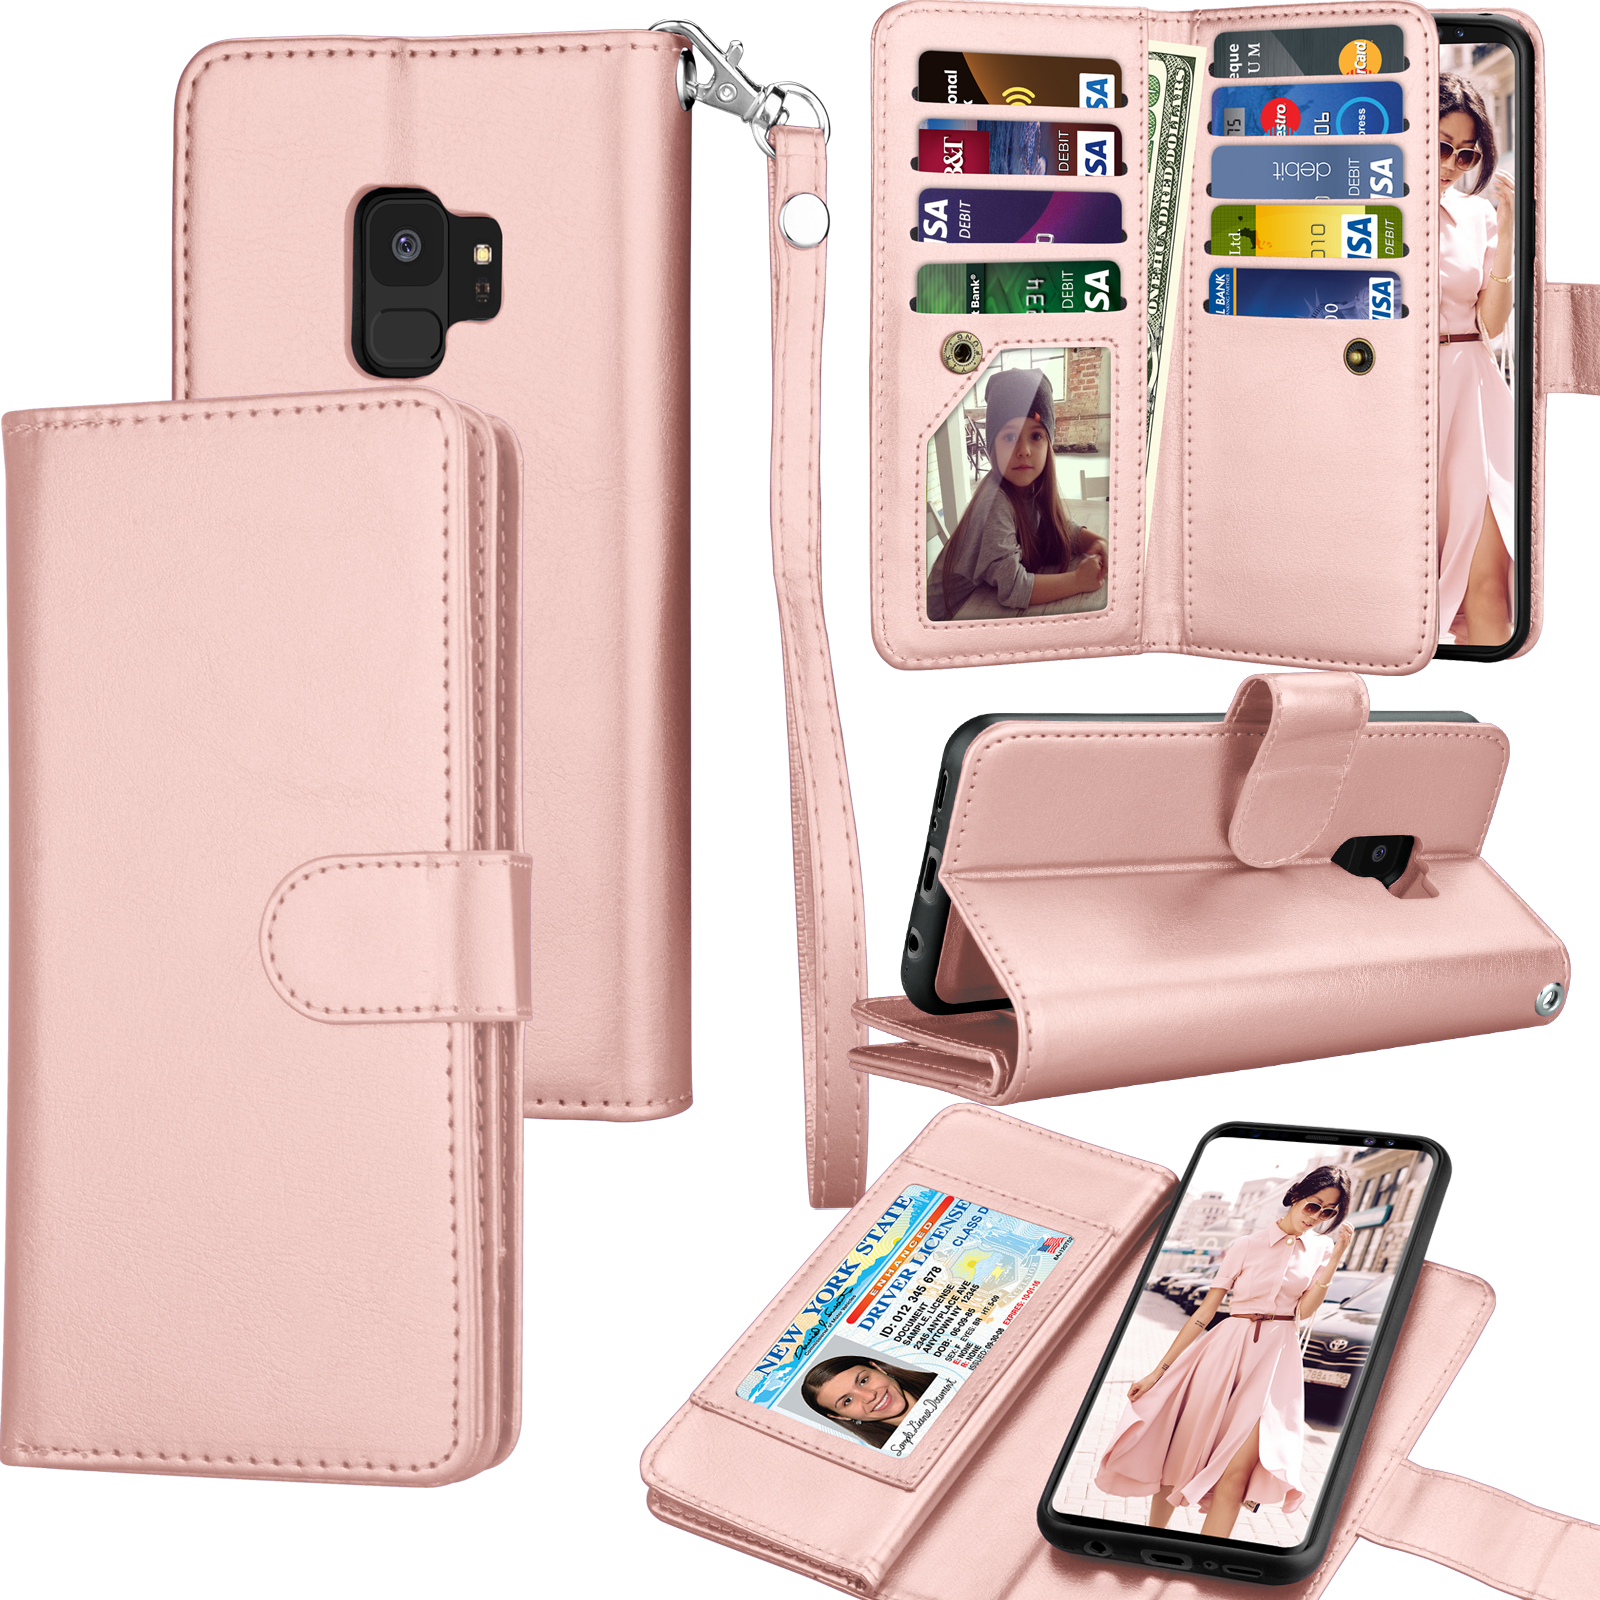 Galaxy S9 Case, Samsung S9 Wallet Case, Samsung Galaxy S9 PU Leather Case, Tekcoo Luxury Cash Credit Card Slots Holder Carrying Folio Flip Cover [Detachable Magnetic Hard Case] & Kickstand -Rose Gold